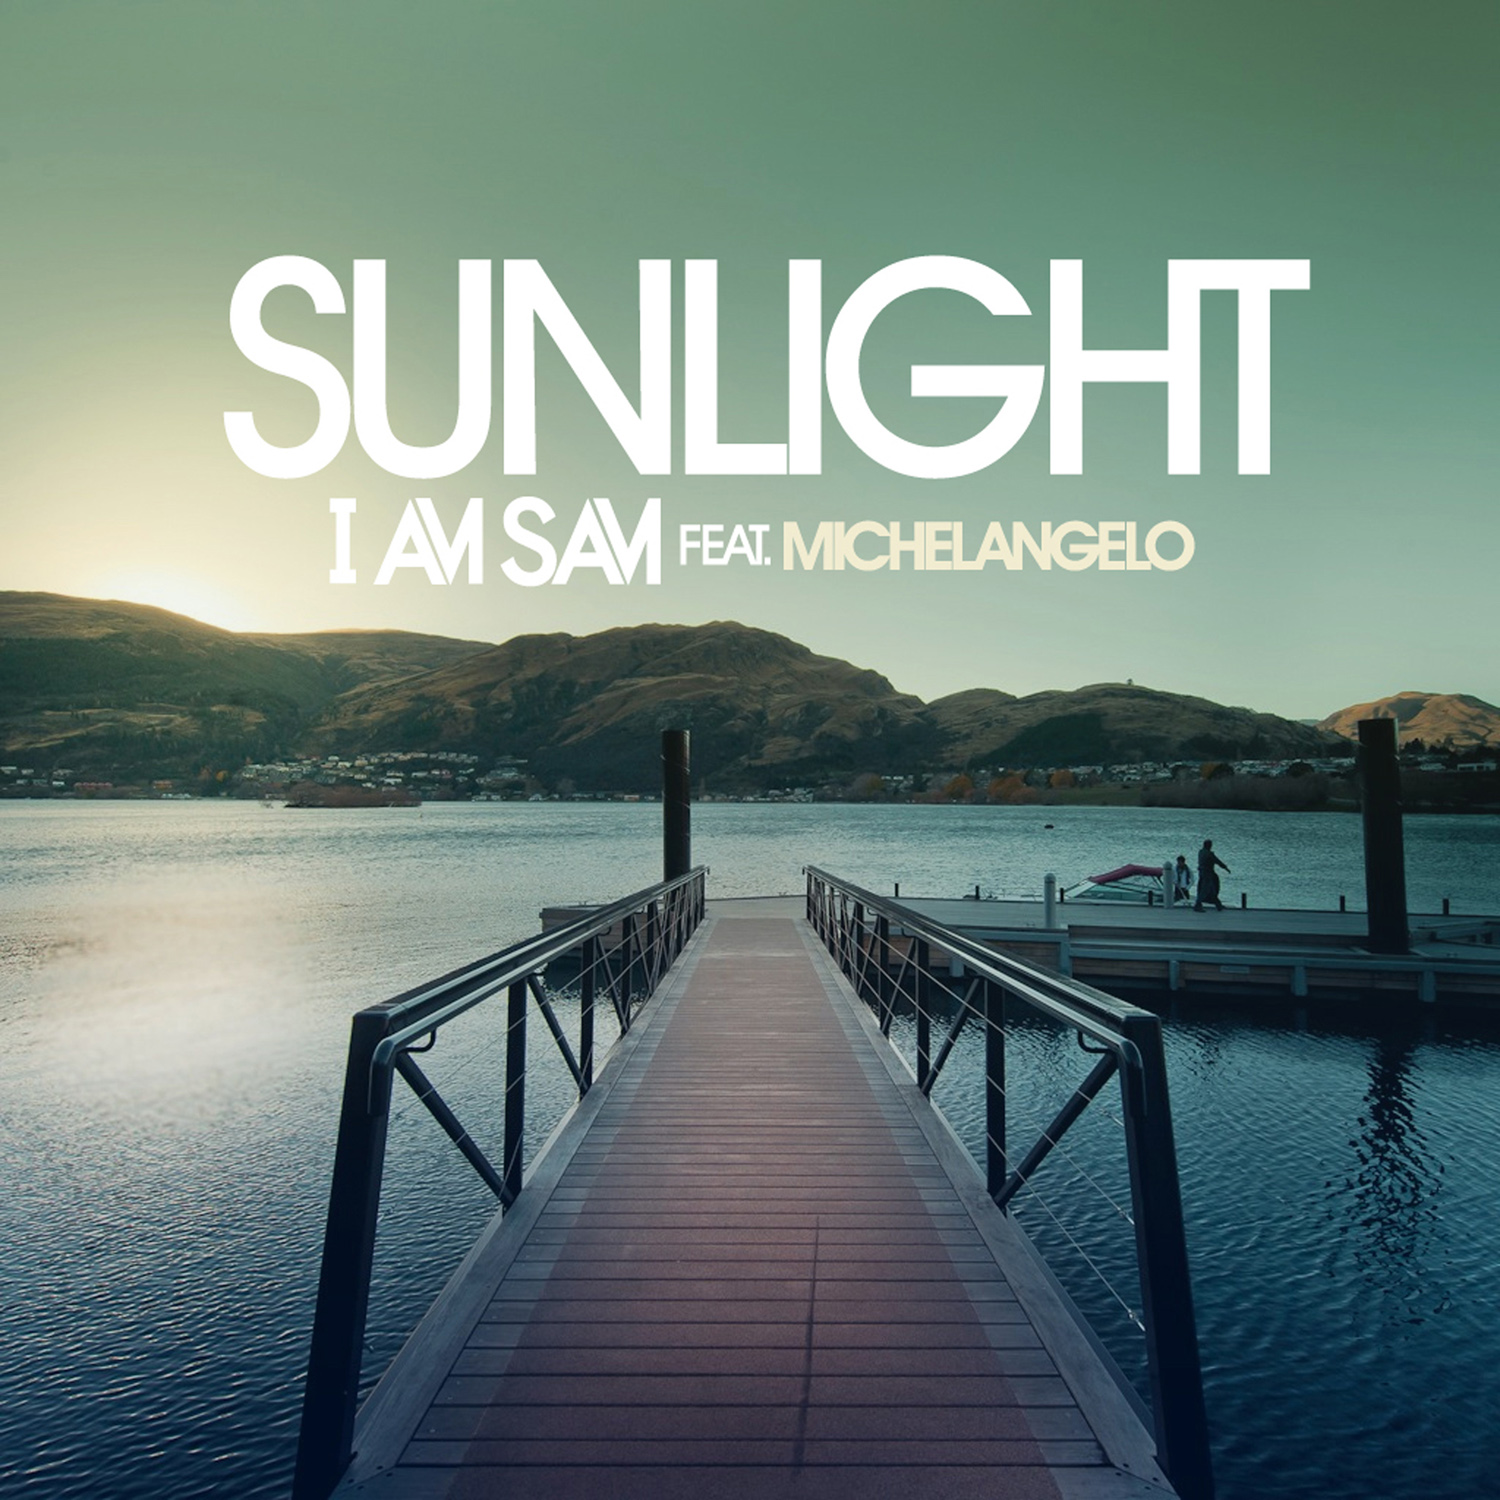 I Am Sam feat. Michelangelo – Sunlight (Phonatics Remix)